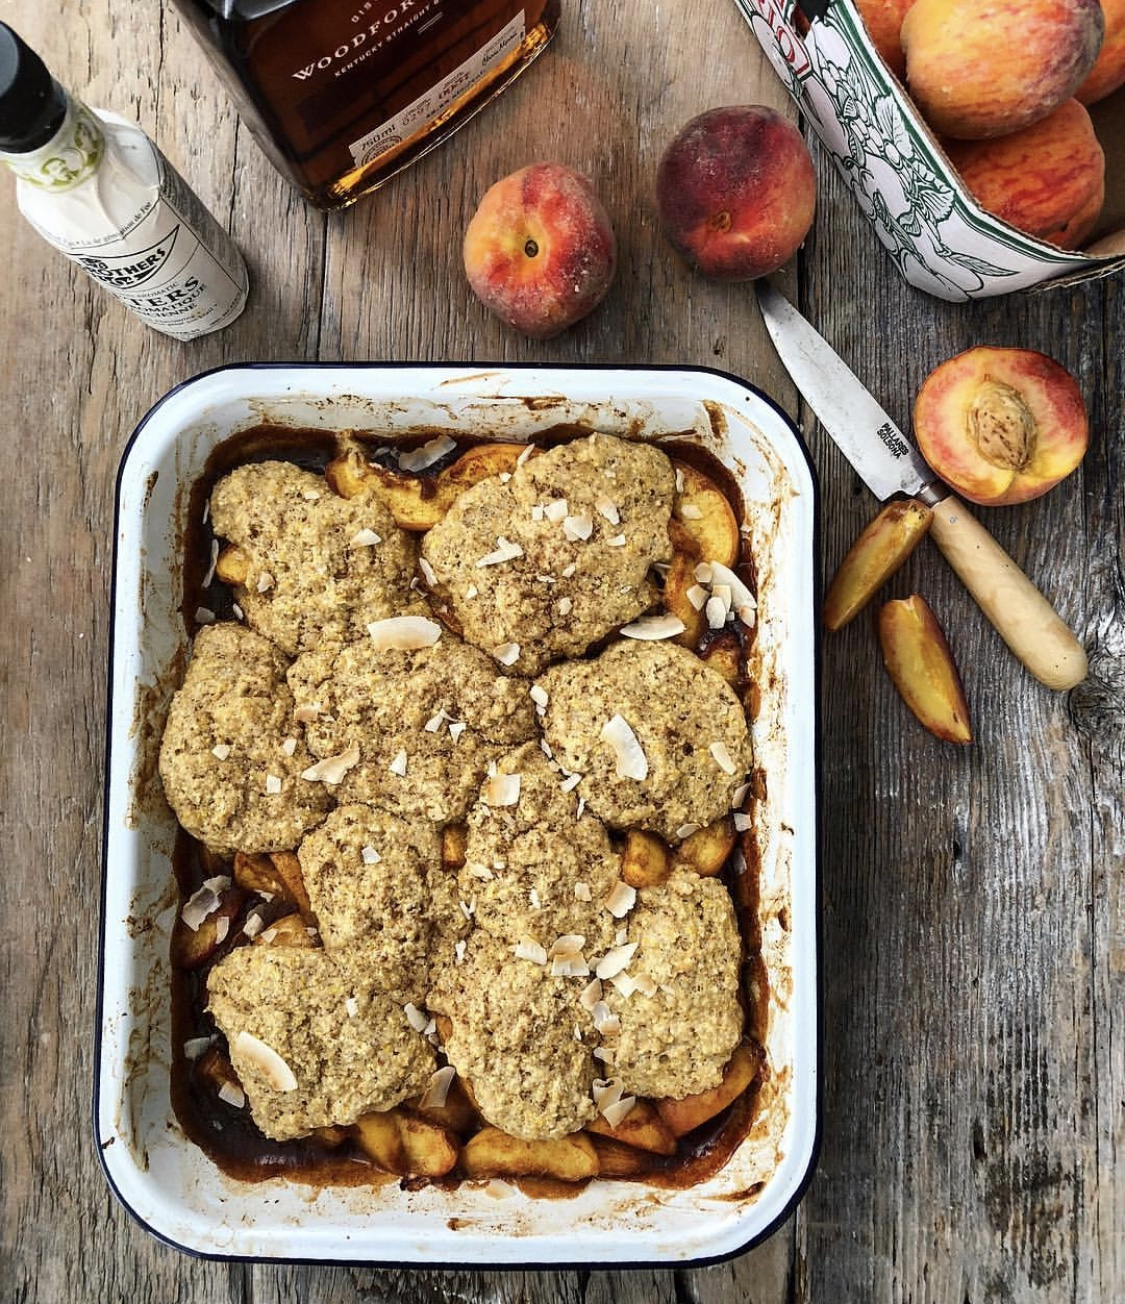 Spicy Maple Bourbon Peach Cobbler with a Cornmeal Biscuit Topping